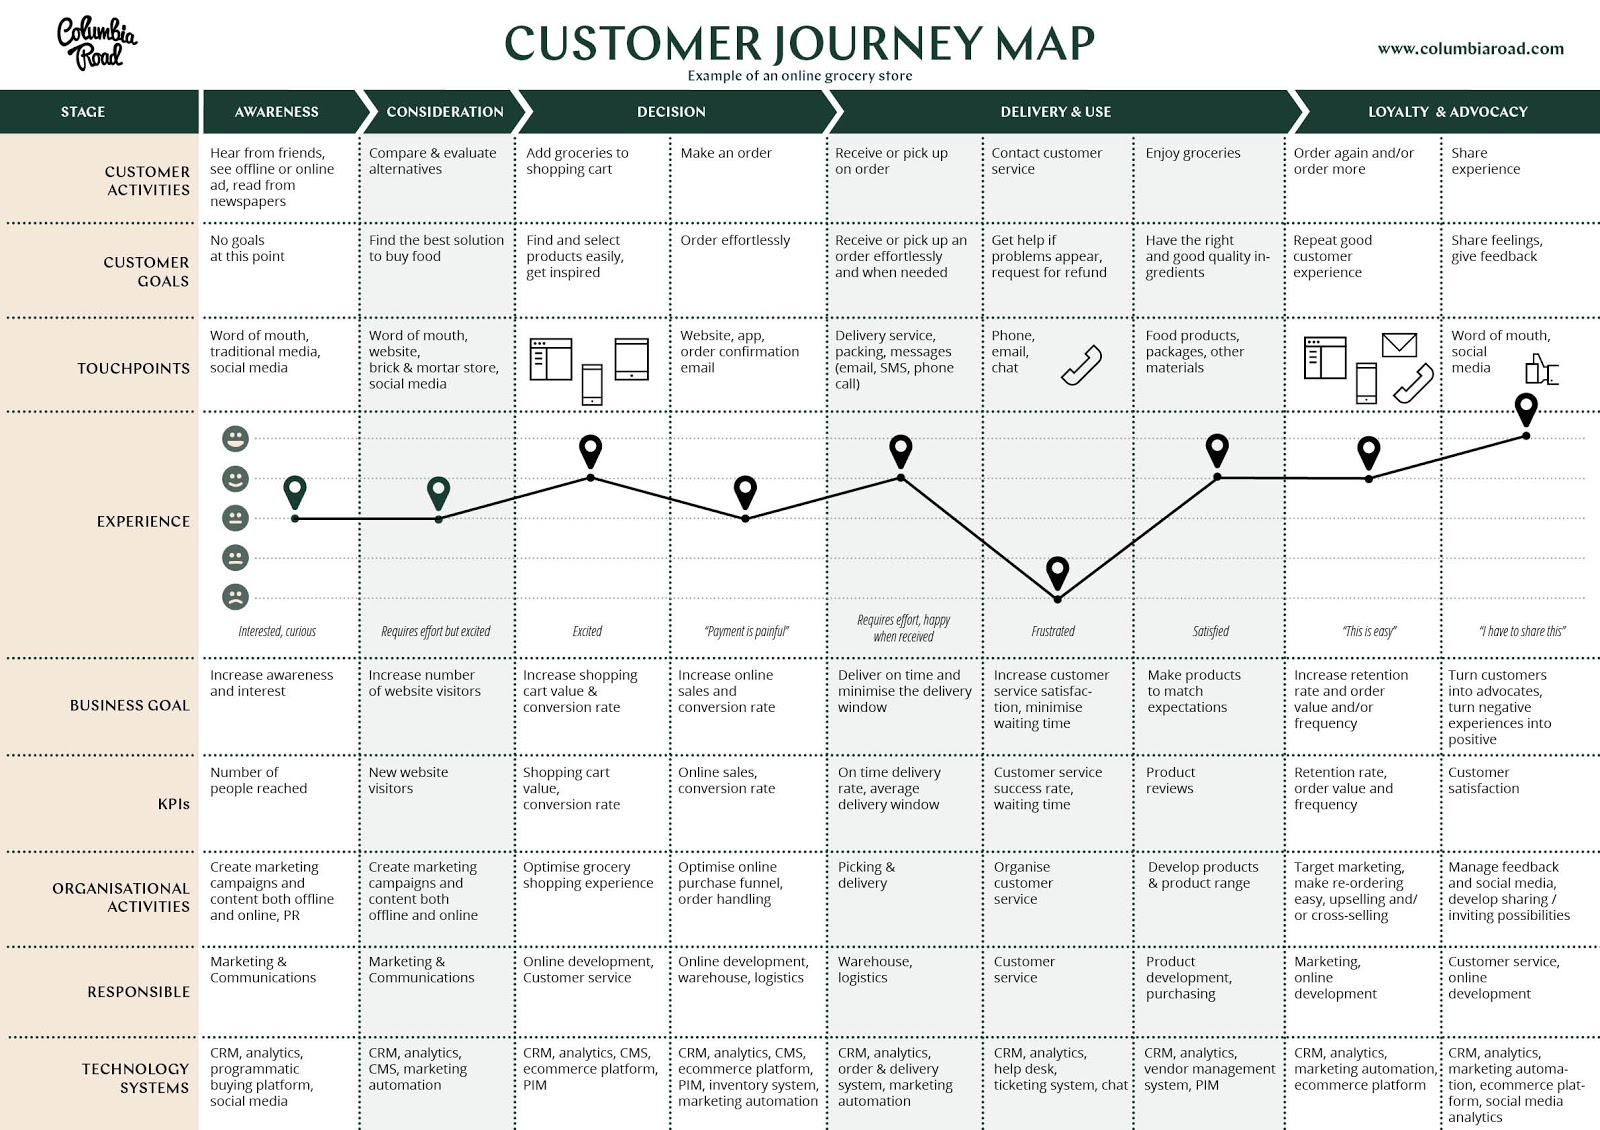 A detailed customer journey map template. This includes rows for customer activities, customer goals, touchpoints, experience, business goals, KPIs, organizational activities, responsibilities, and technology systems.